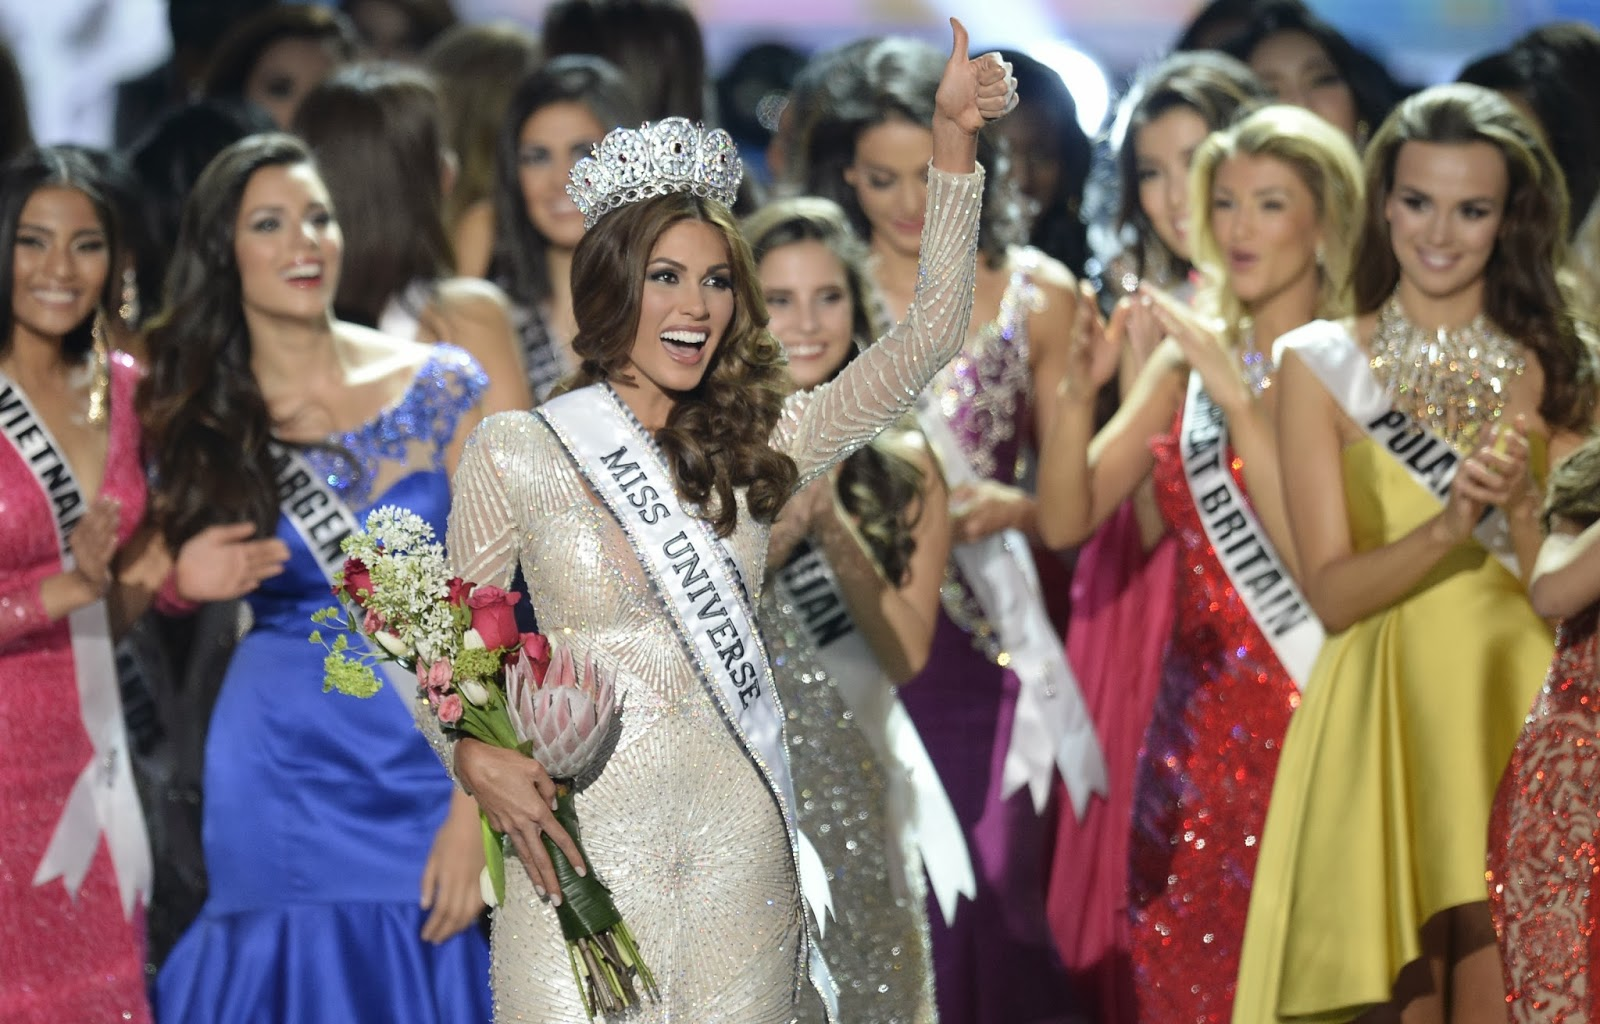 the 2013 Miss Universe competition in Moscow on November 9, 2013